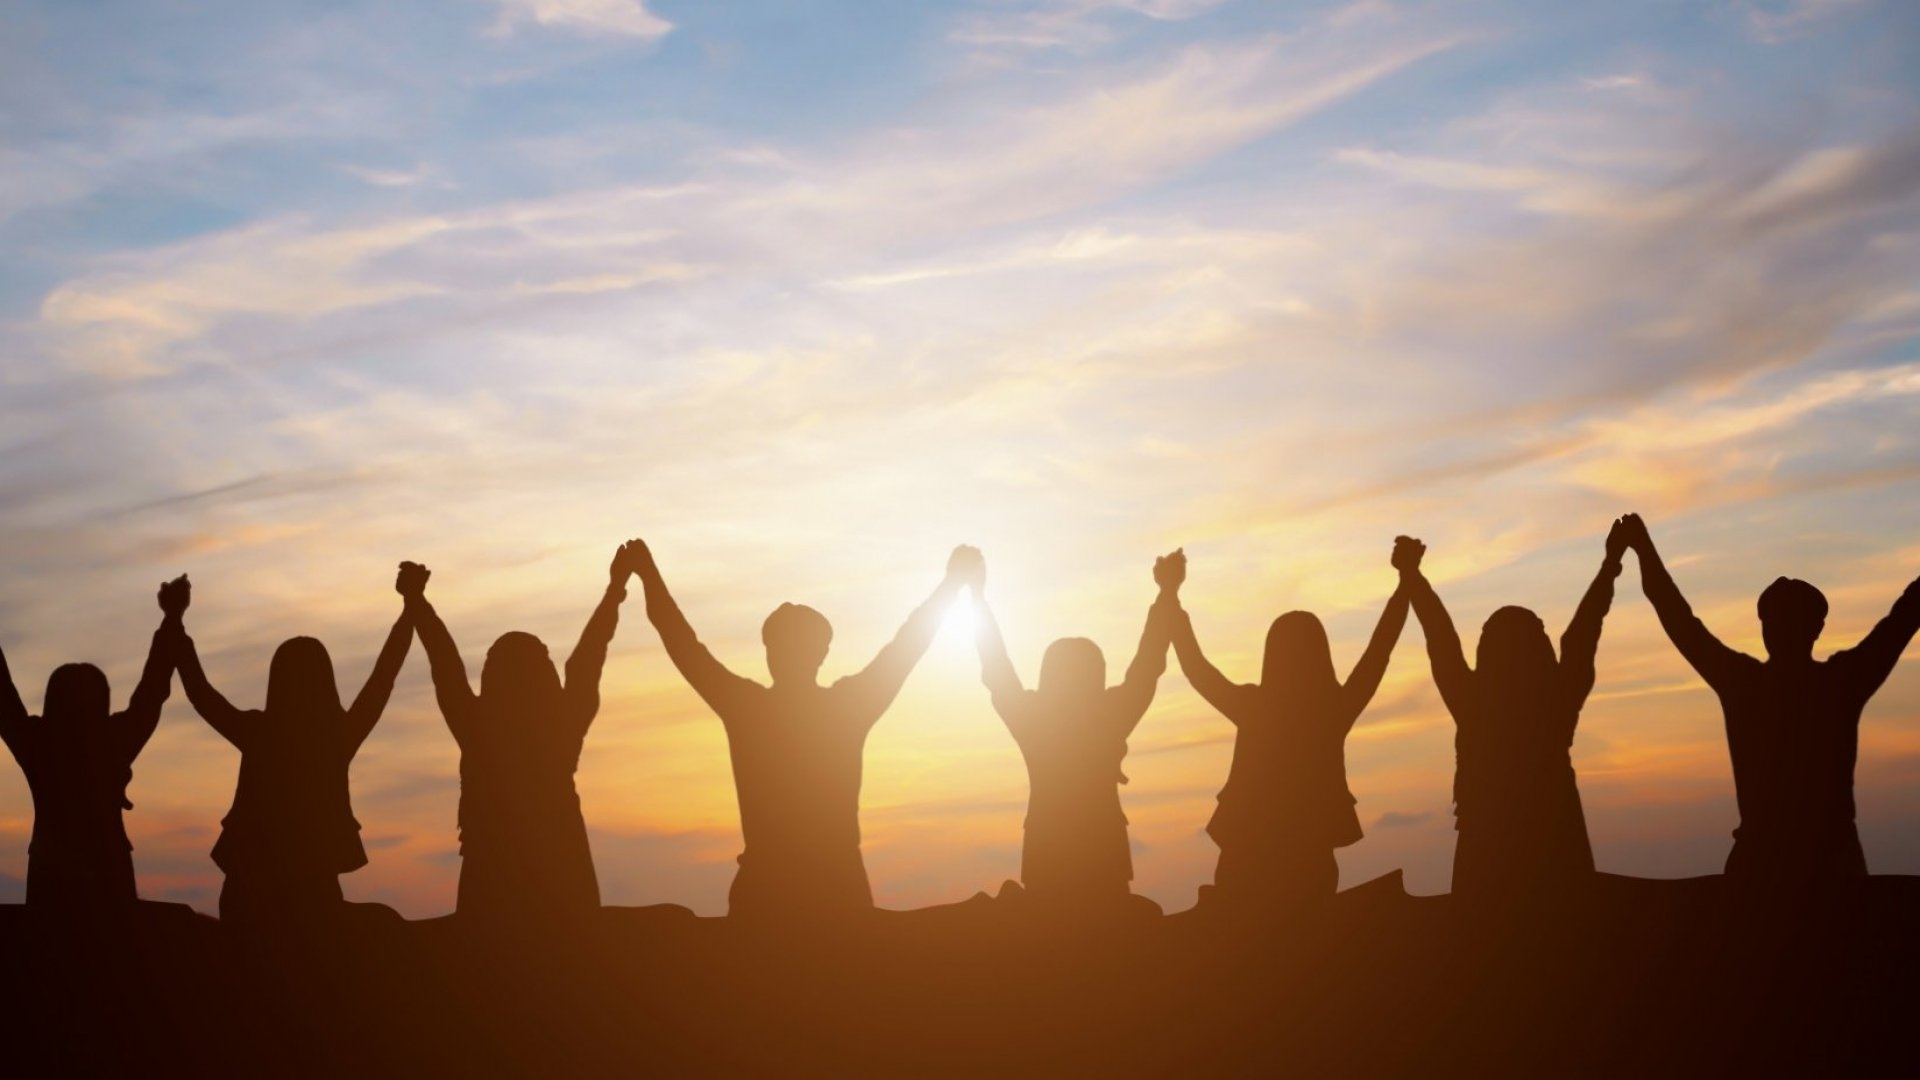 43 Inspiring Motivational Quotes About Teamwork And Collaboration Inc Com